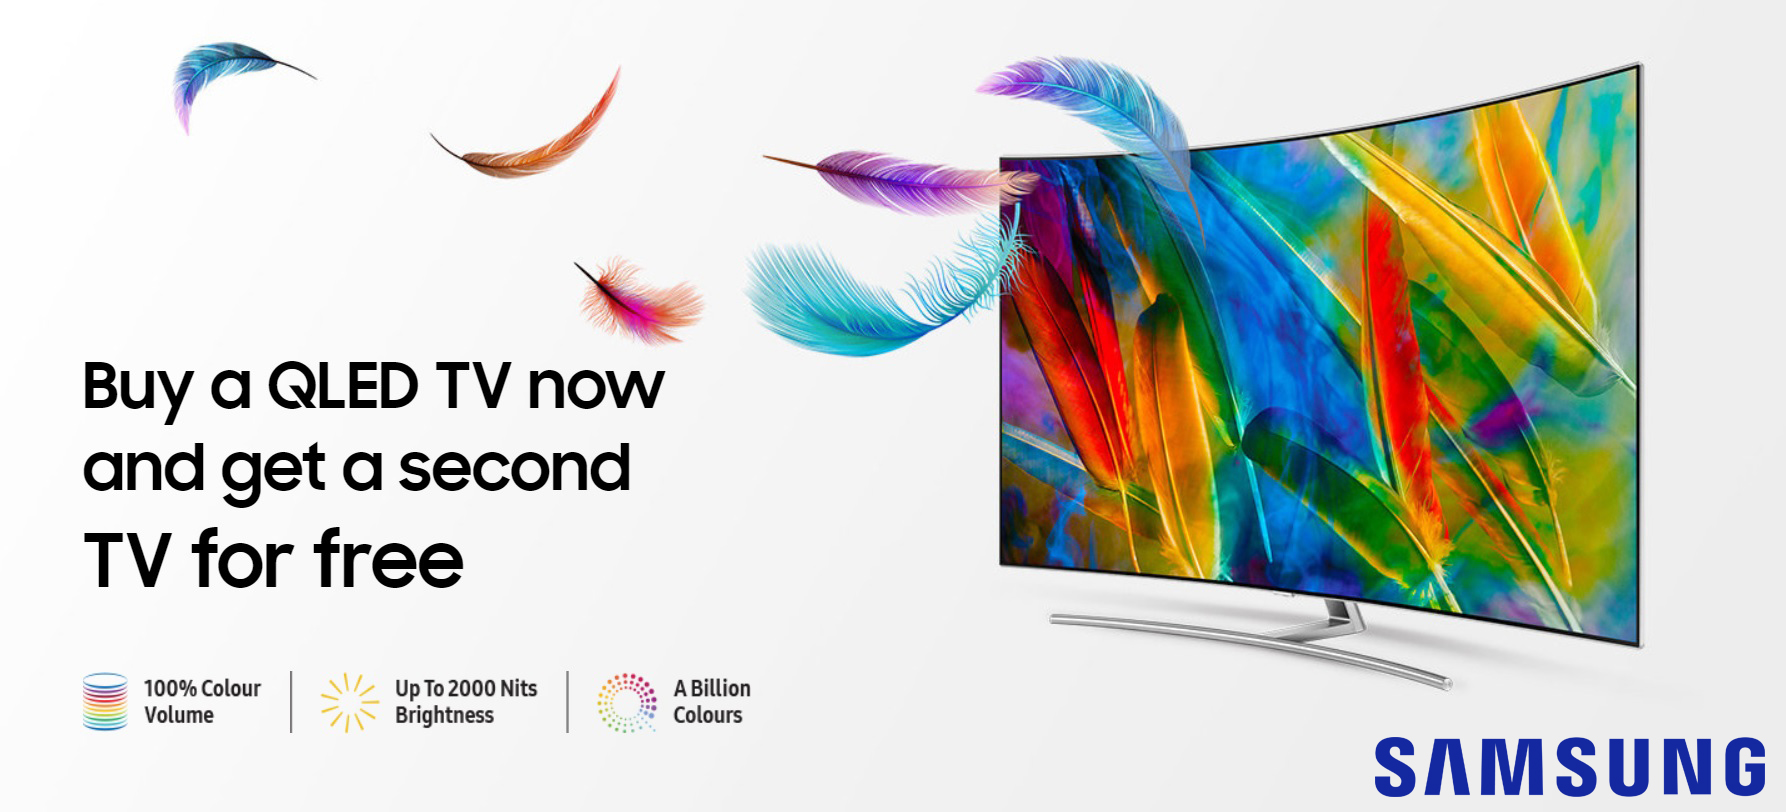 Enhance your viewing experience and enter the new era of TV innovation